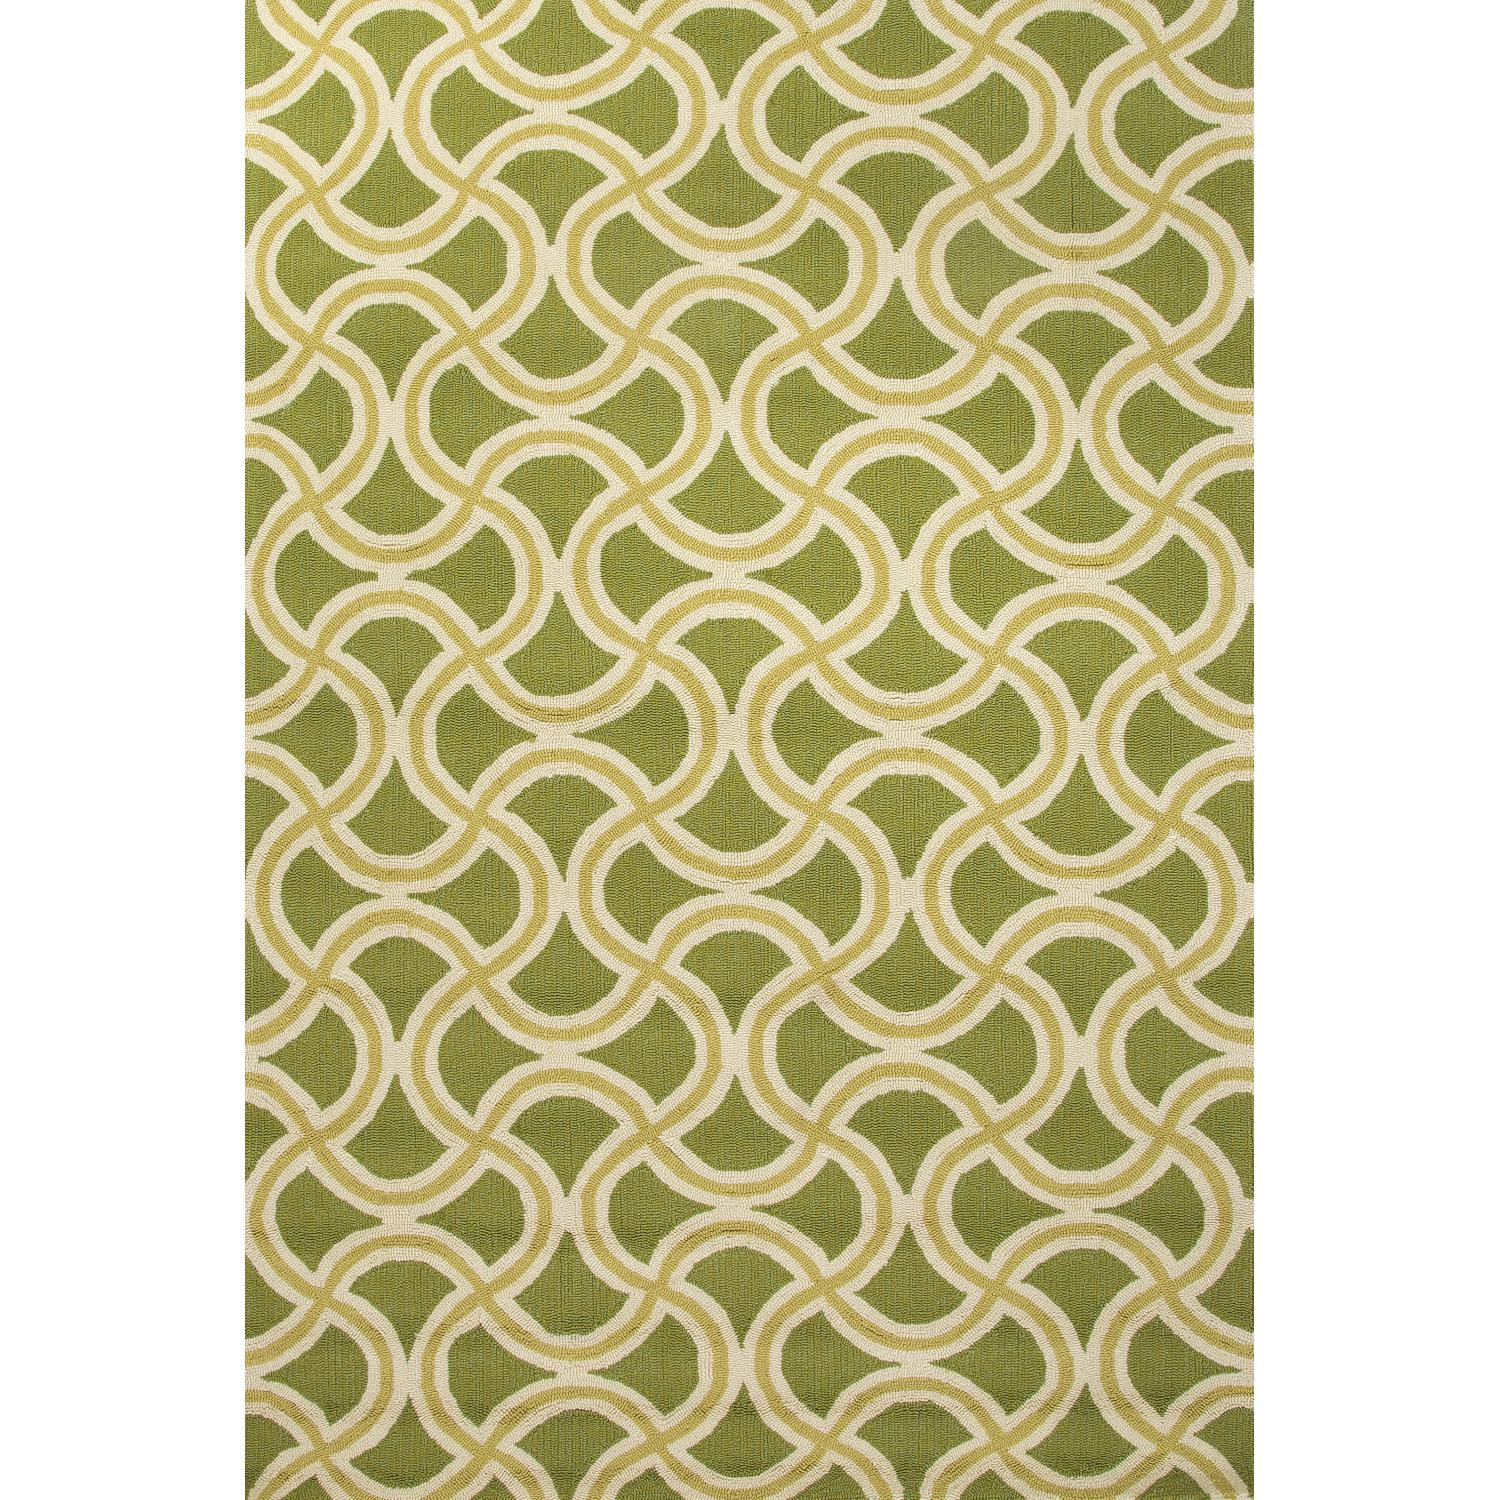 Picture of Jaipur Rugs Barcelona Barbells 2 X 3 Indoor/Outdoor Rug - Green/Yellow